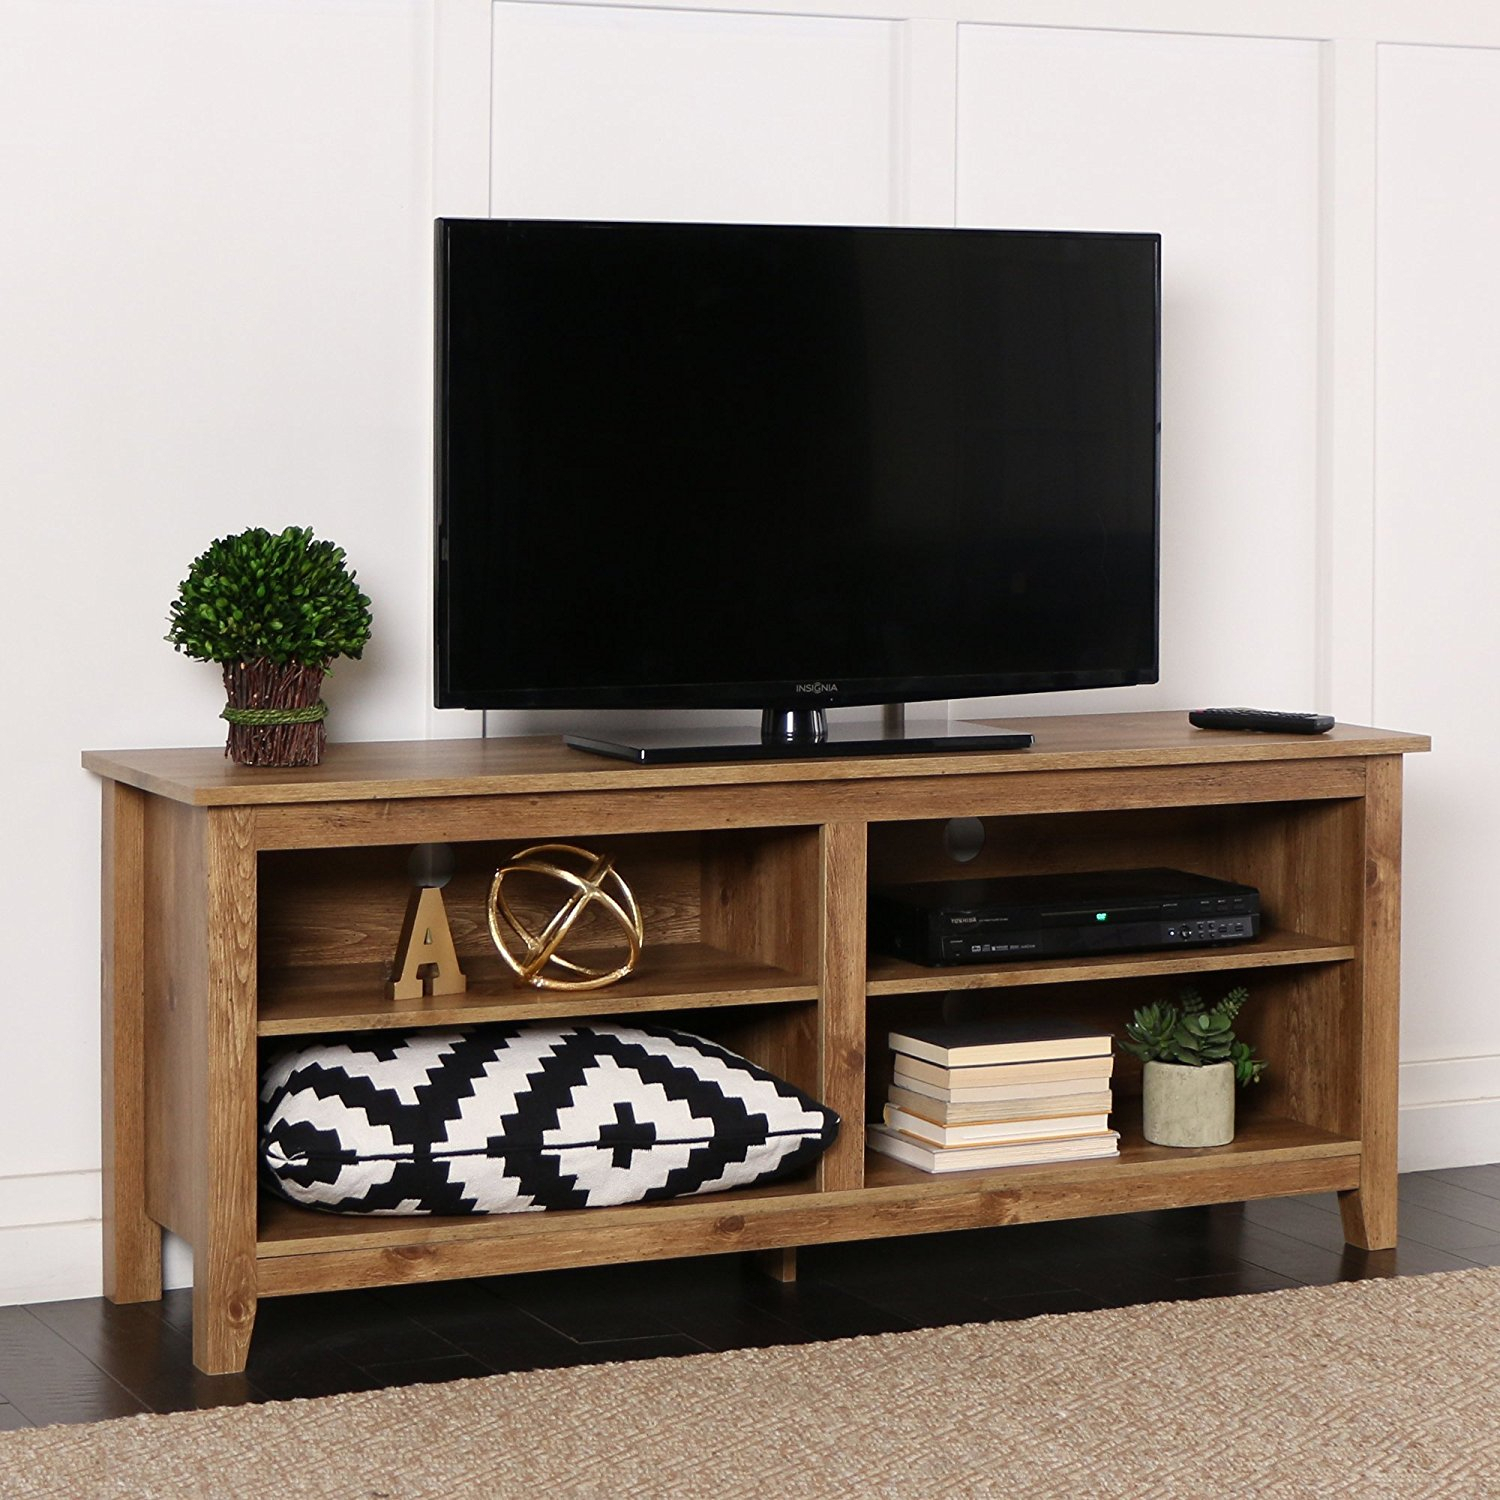 Tv Stands: Corner Tv Stand 60 Inch Flat Screen Brandnew Design 55 With Regard To Rowan 45 Inch Tv Stands (View 2 of 30)